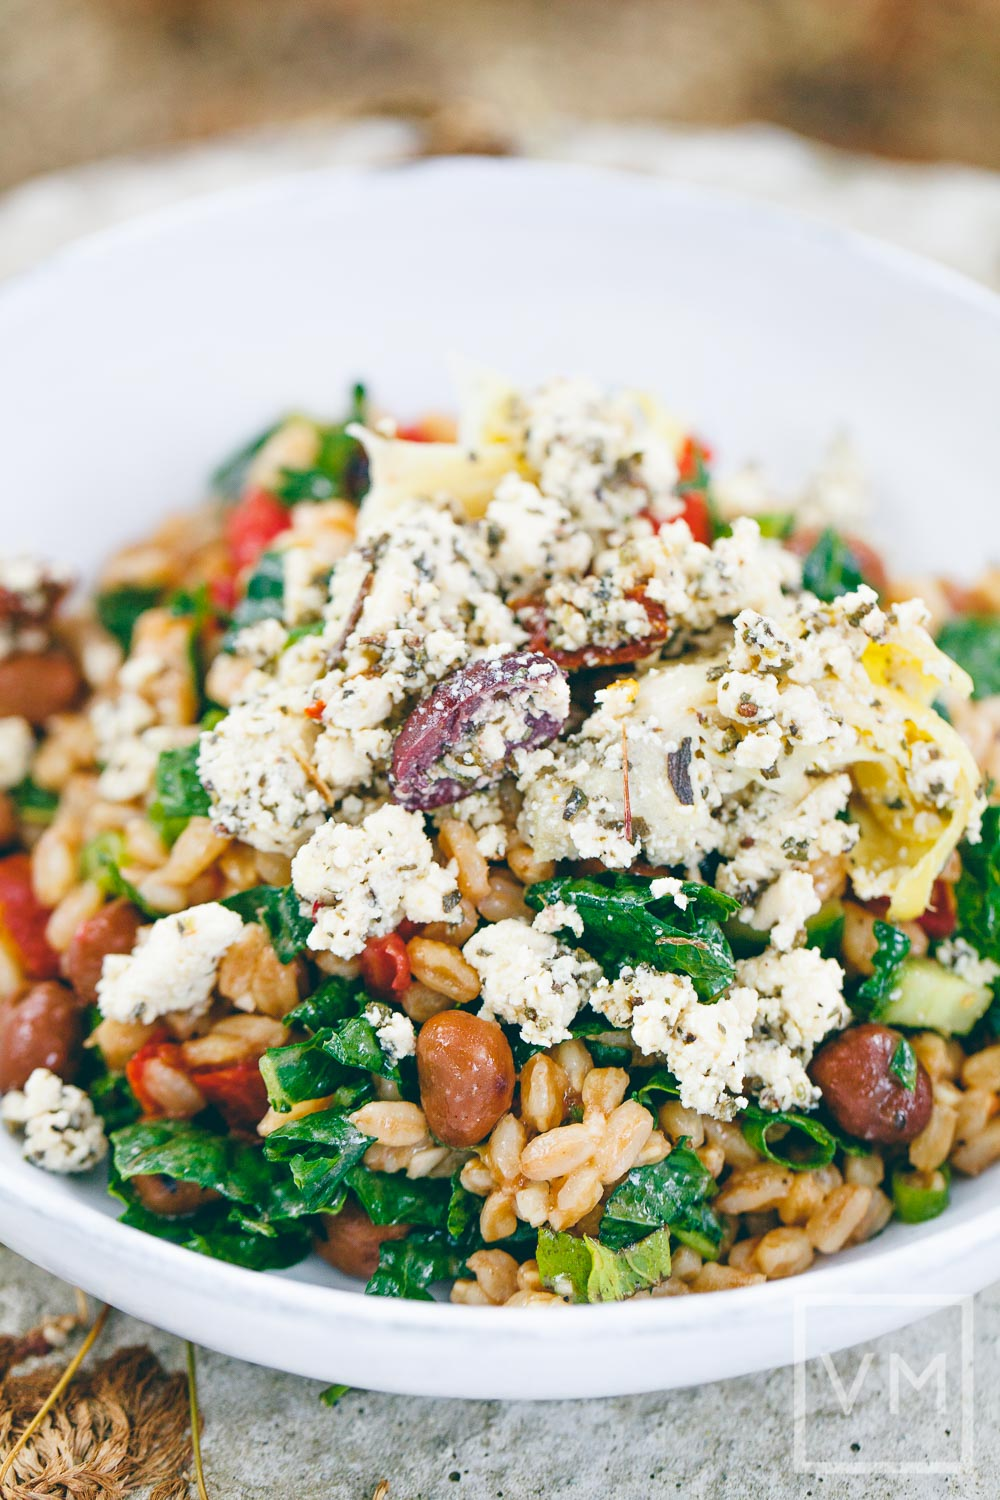 Vegan Farro Salad with Fava Beans and Vegan Feta